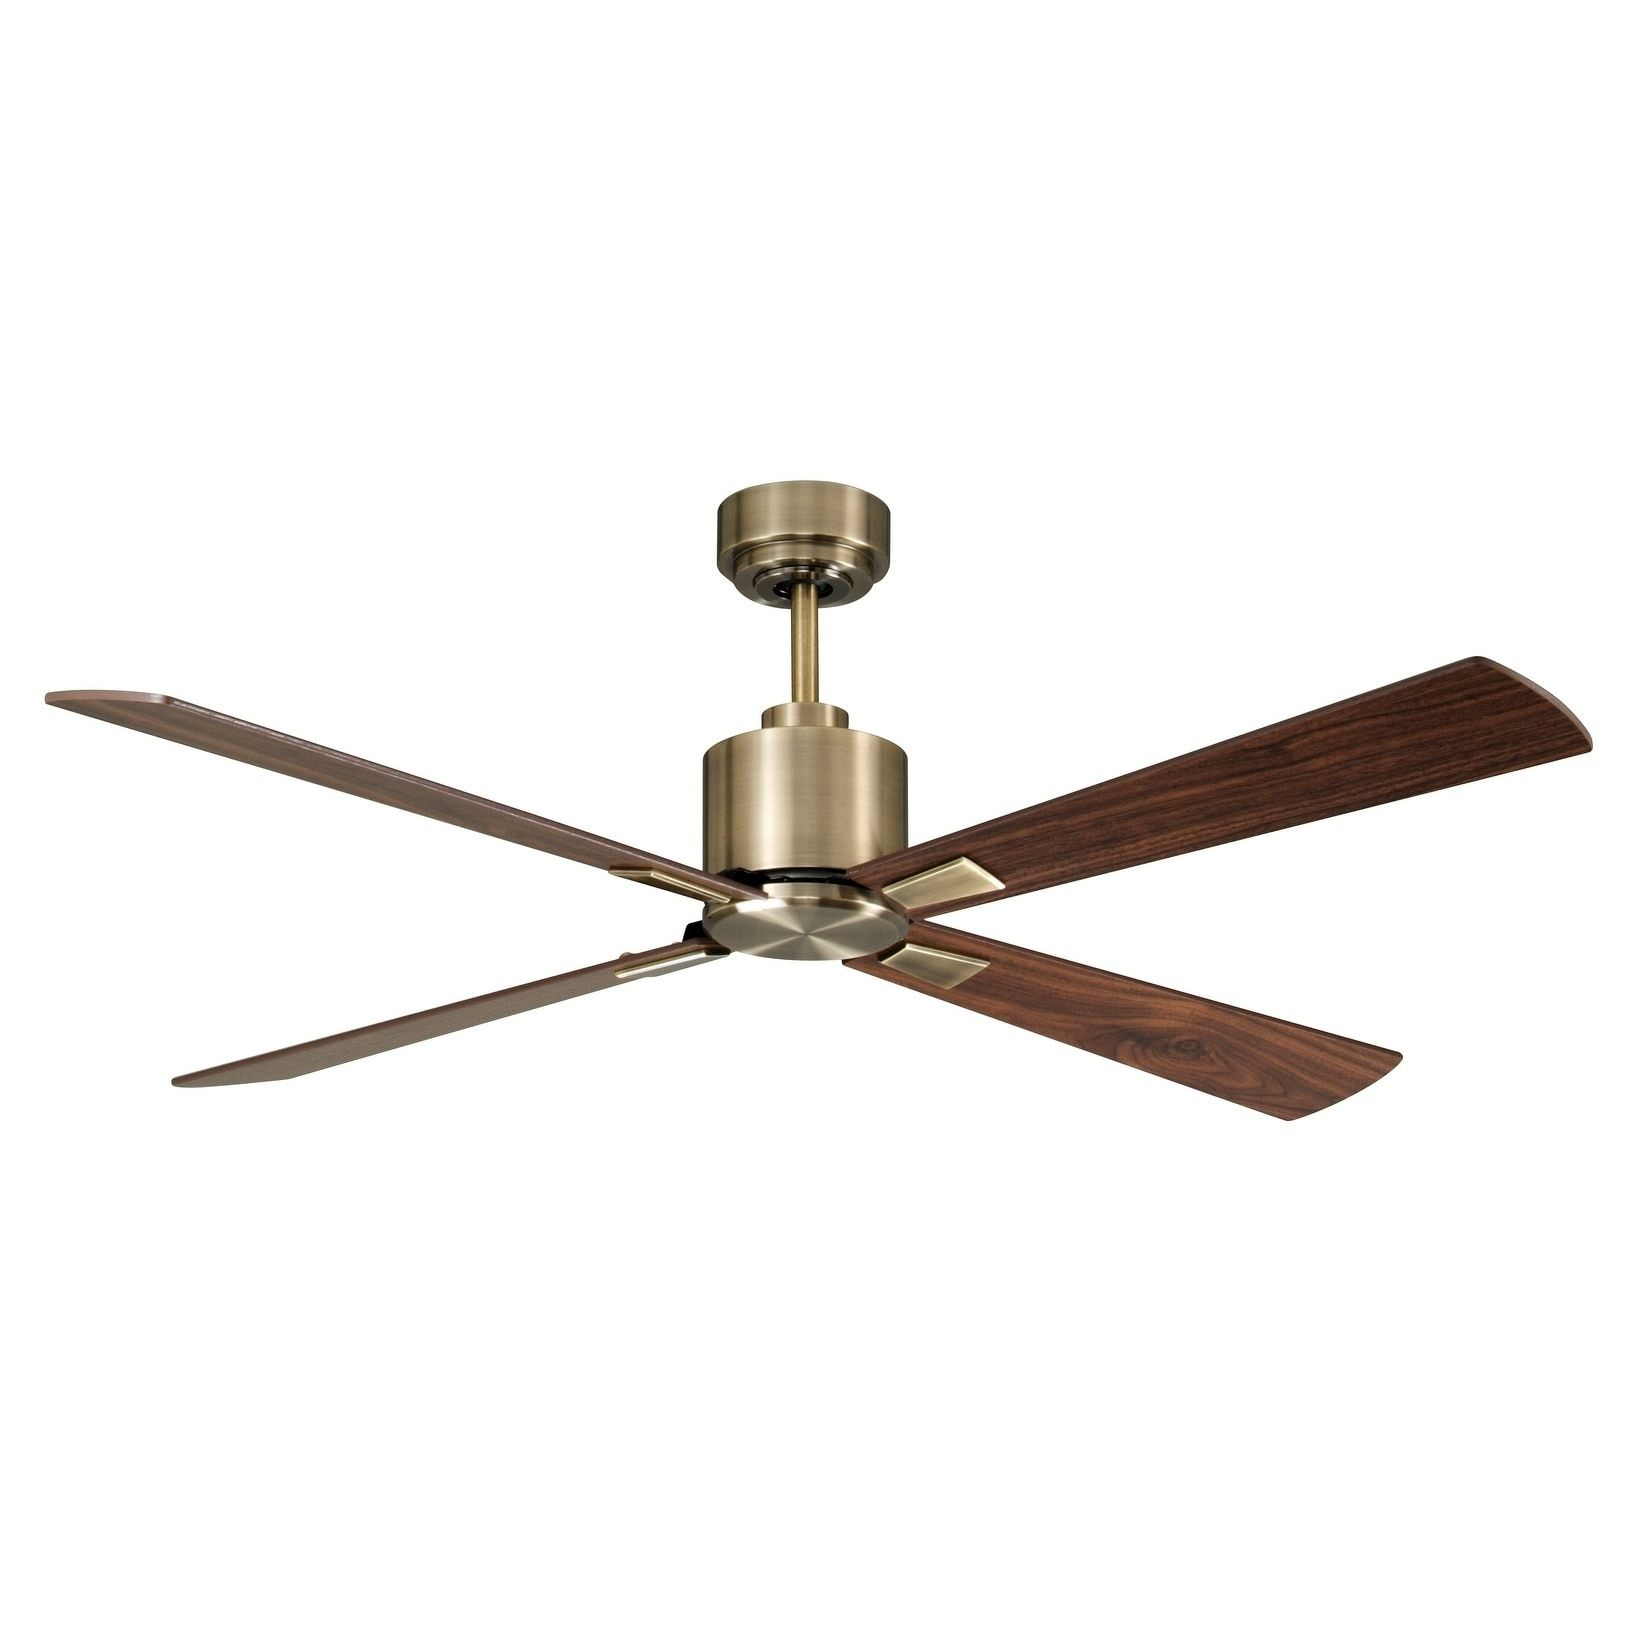 52 In Antique Brass Ceiling Fan with Remote Control Metal